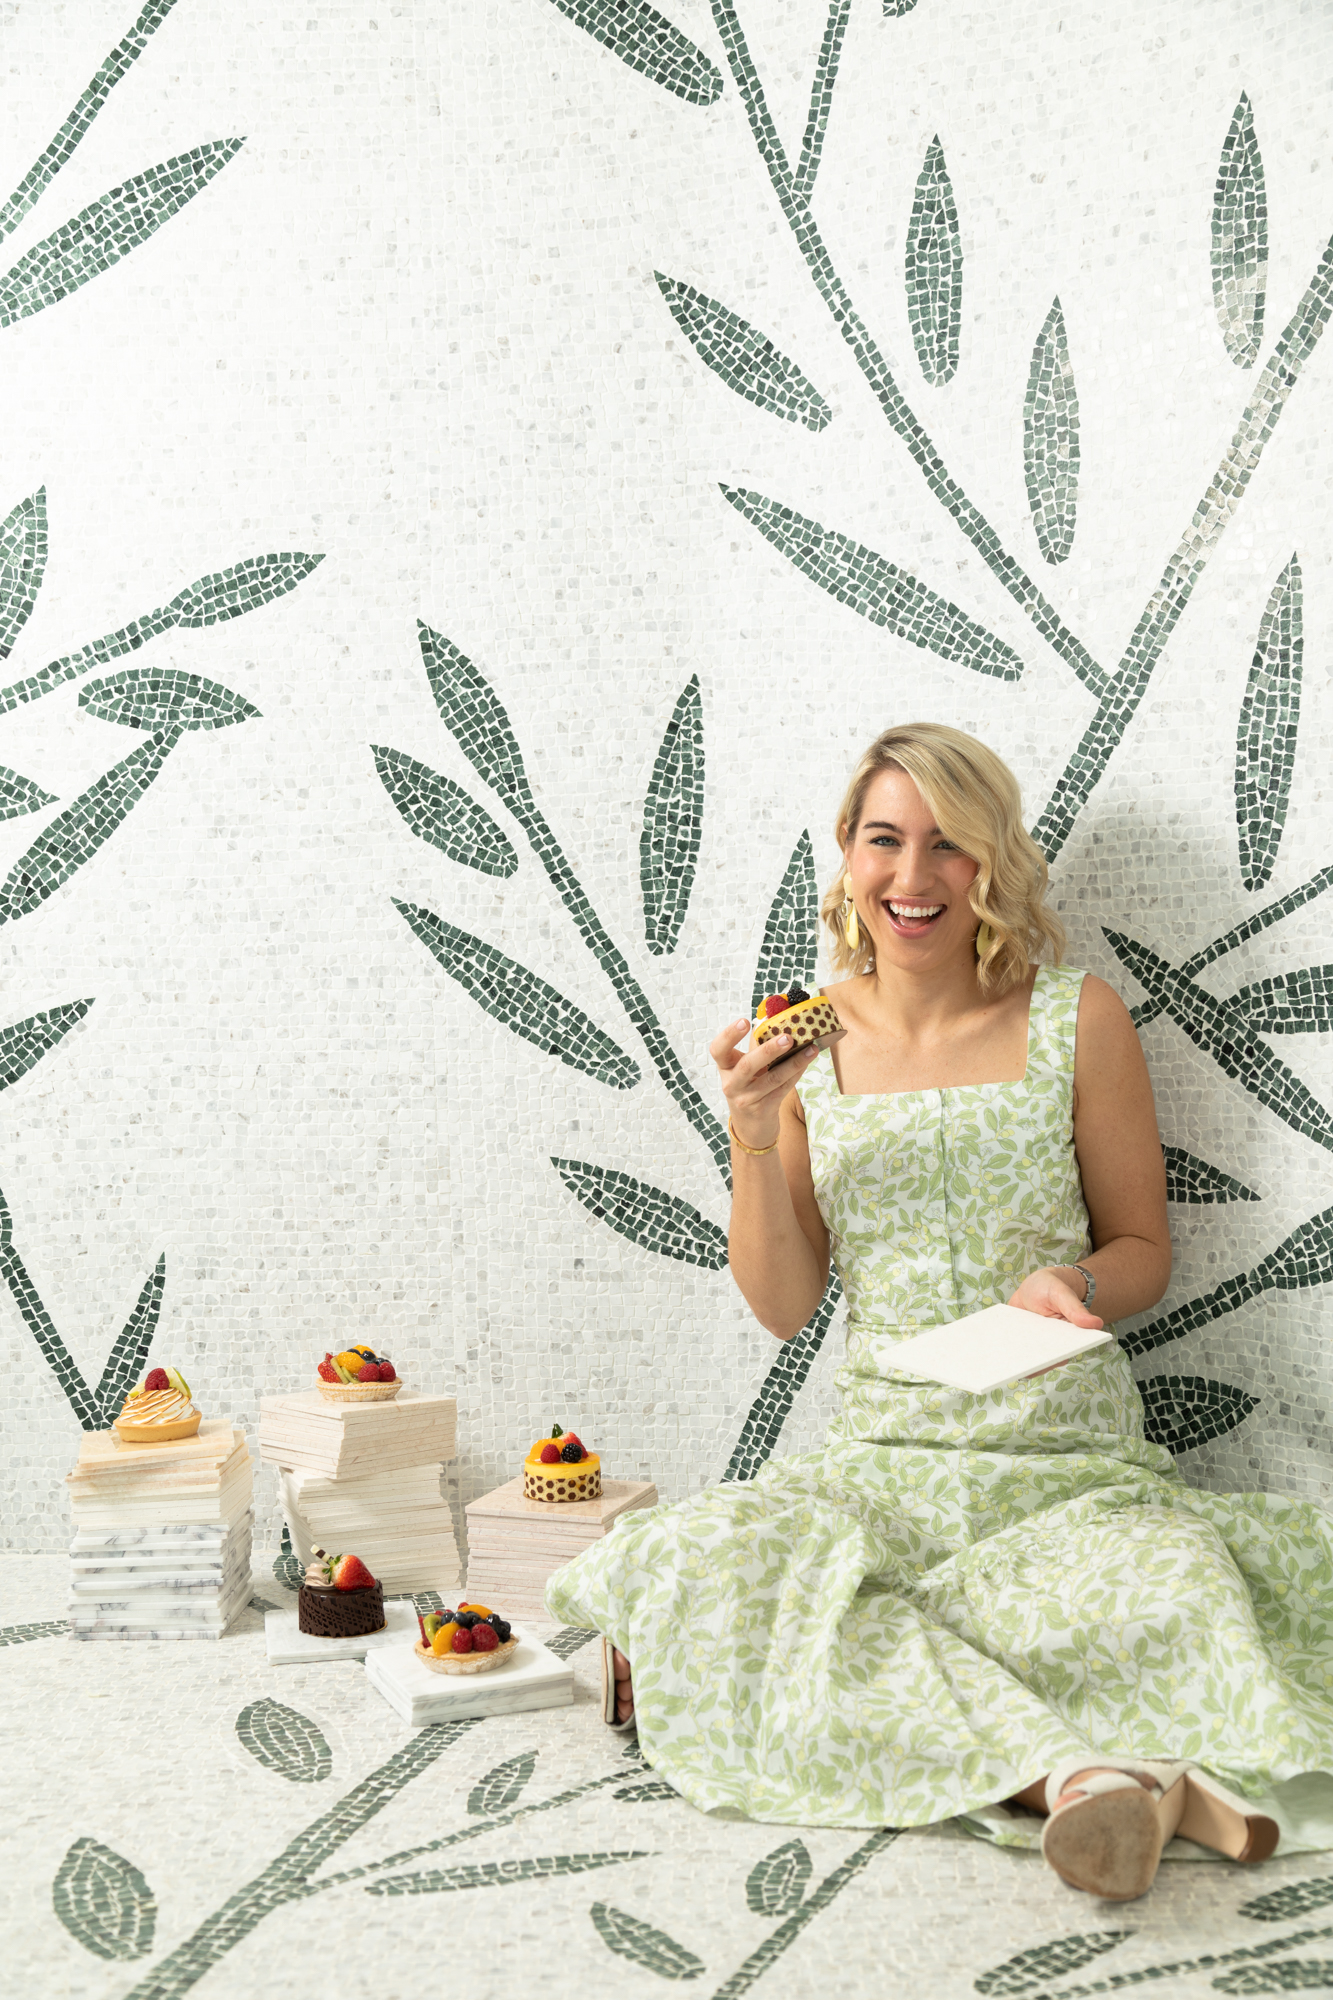 Patrick Heagney photographs a laughing Clary Bosbyshell as she sits in a marble tiled shower eating picturesque pastries